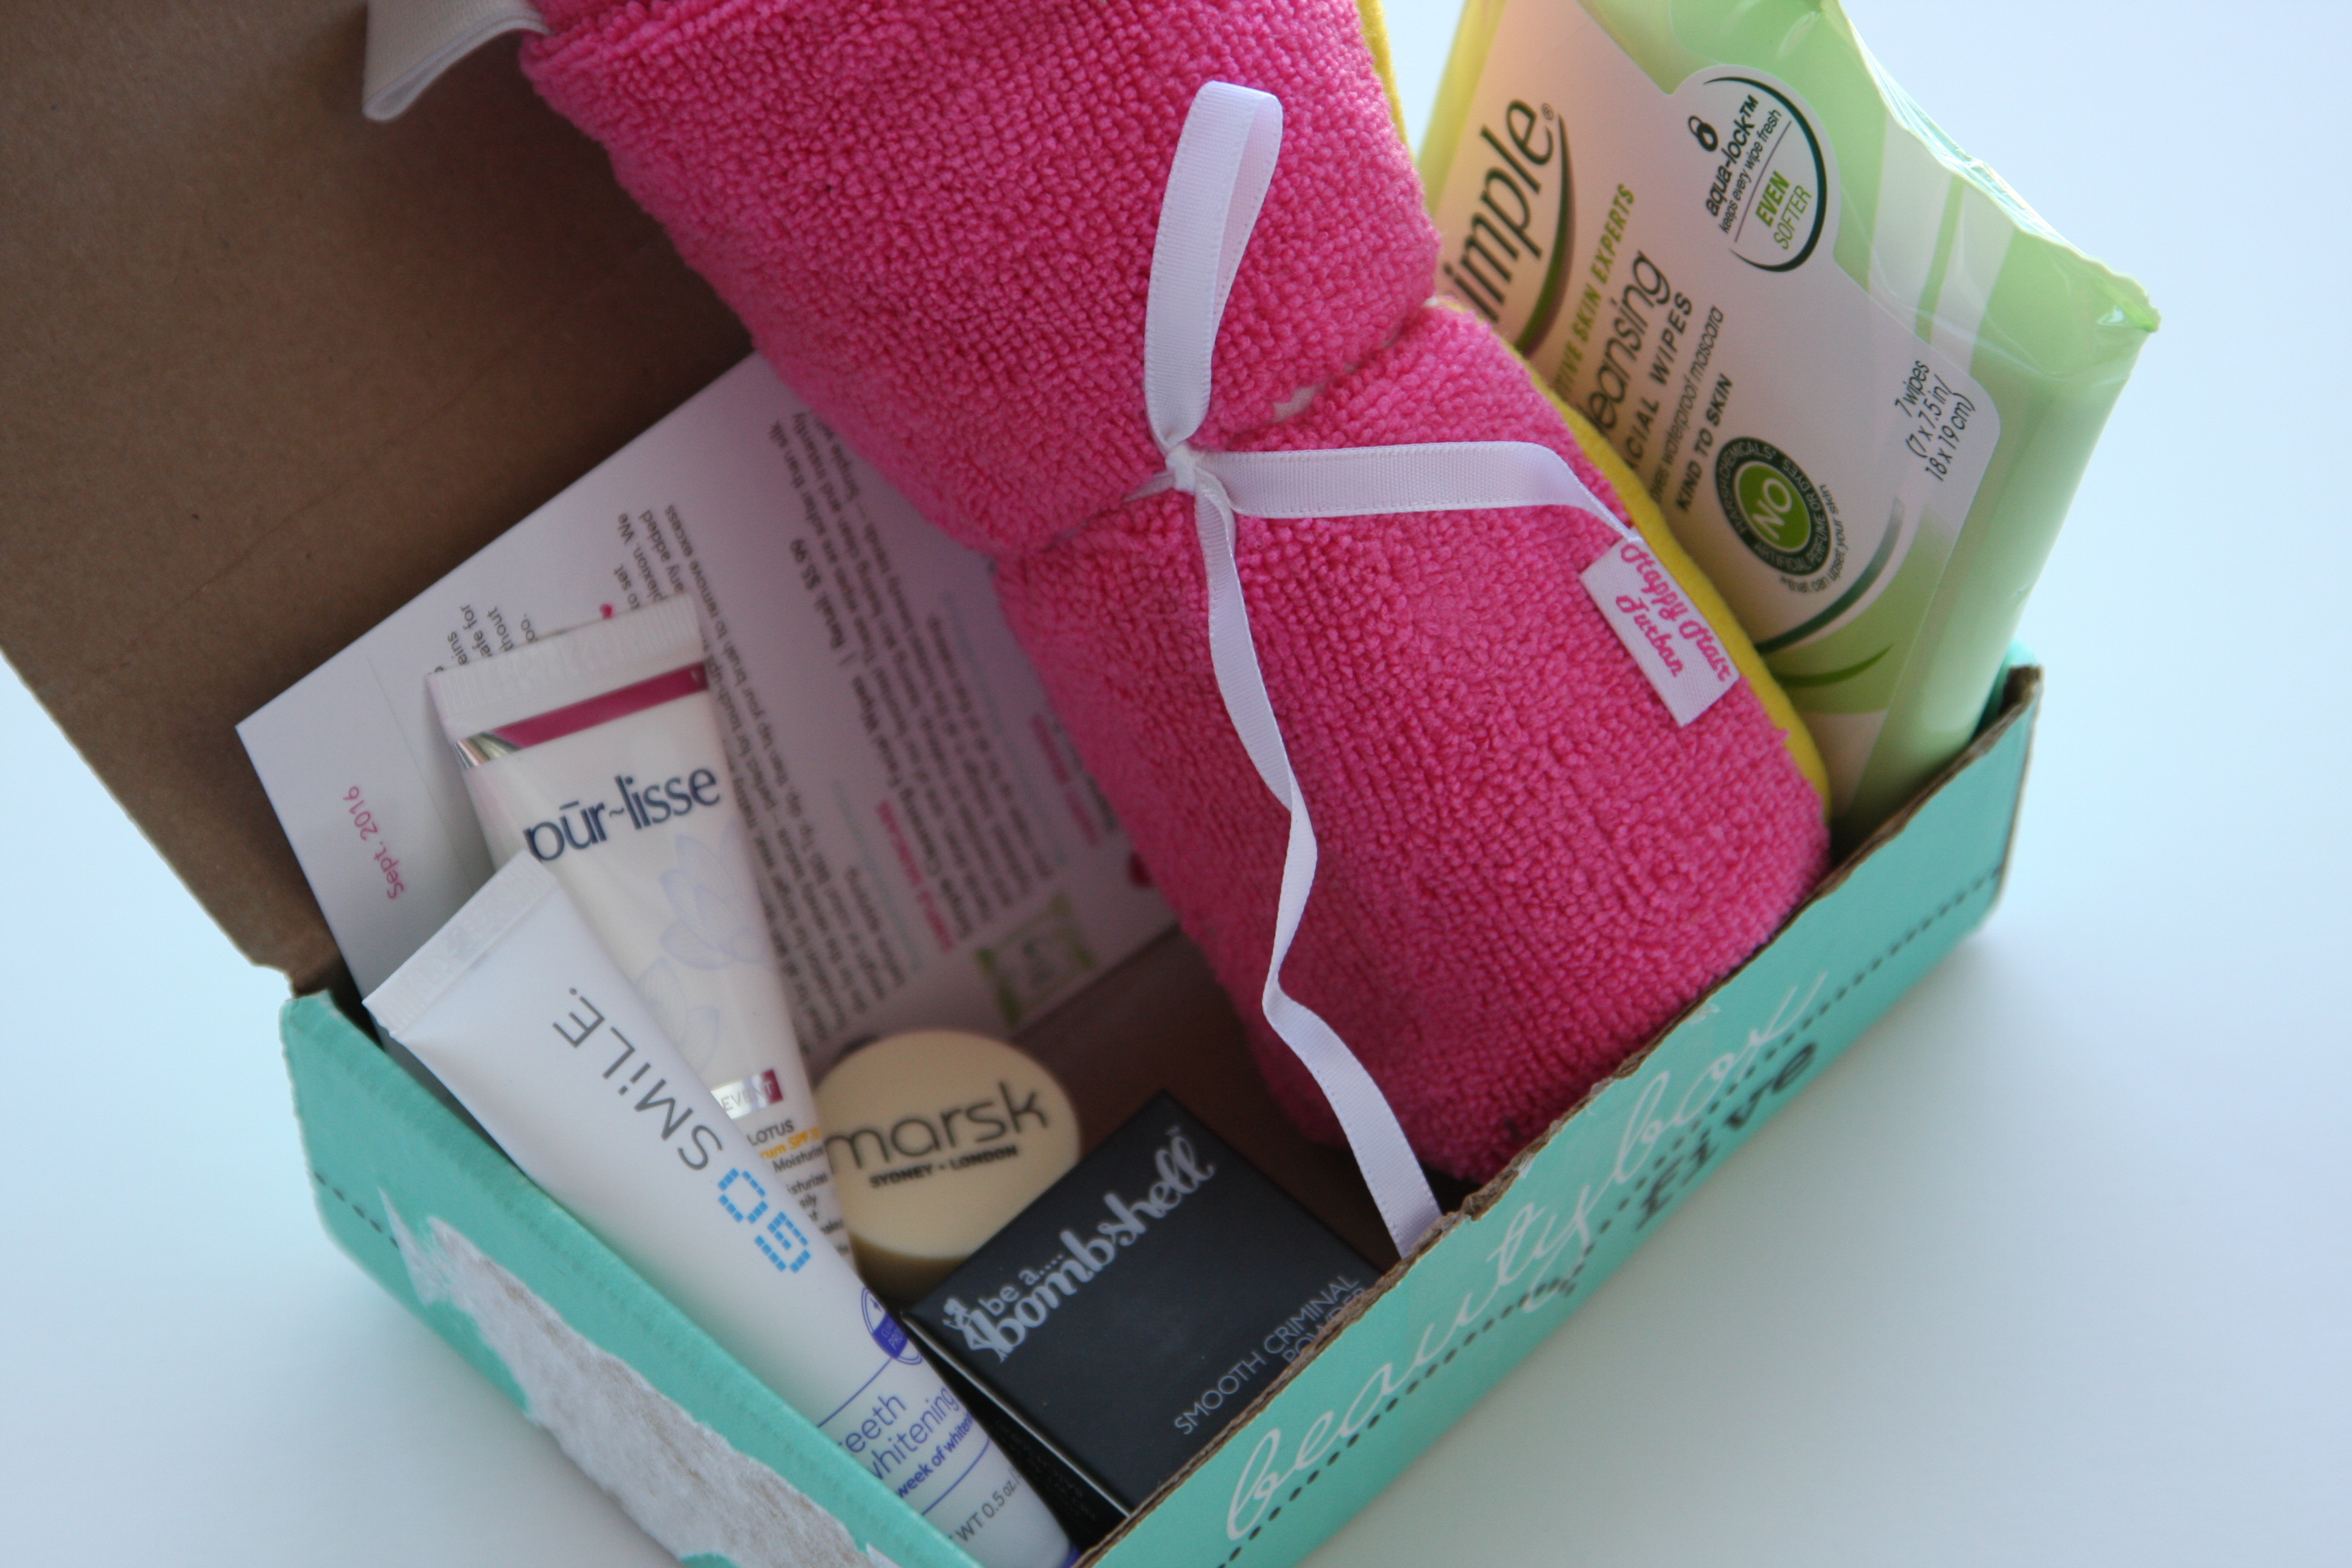 September BeautyBox 5 Subscription Box – Review